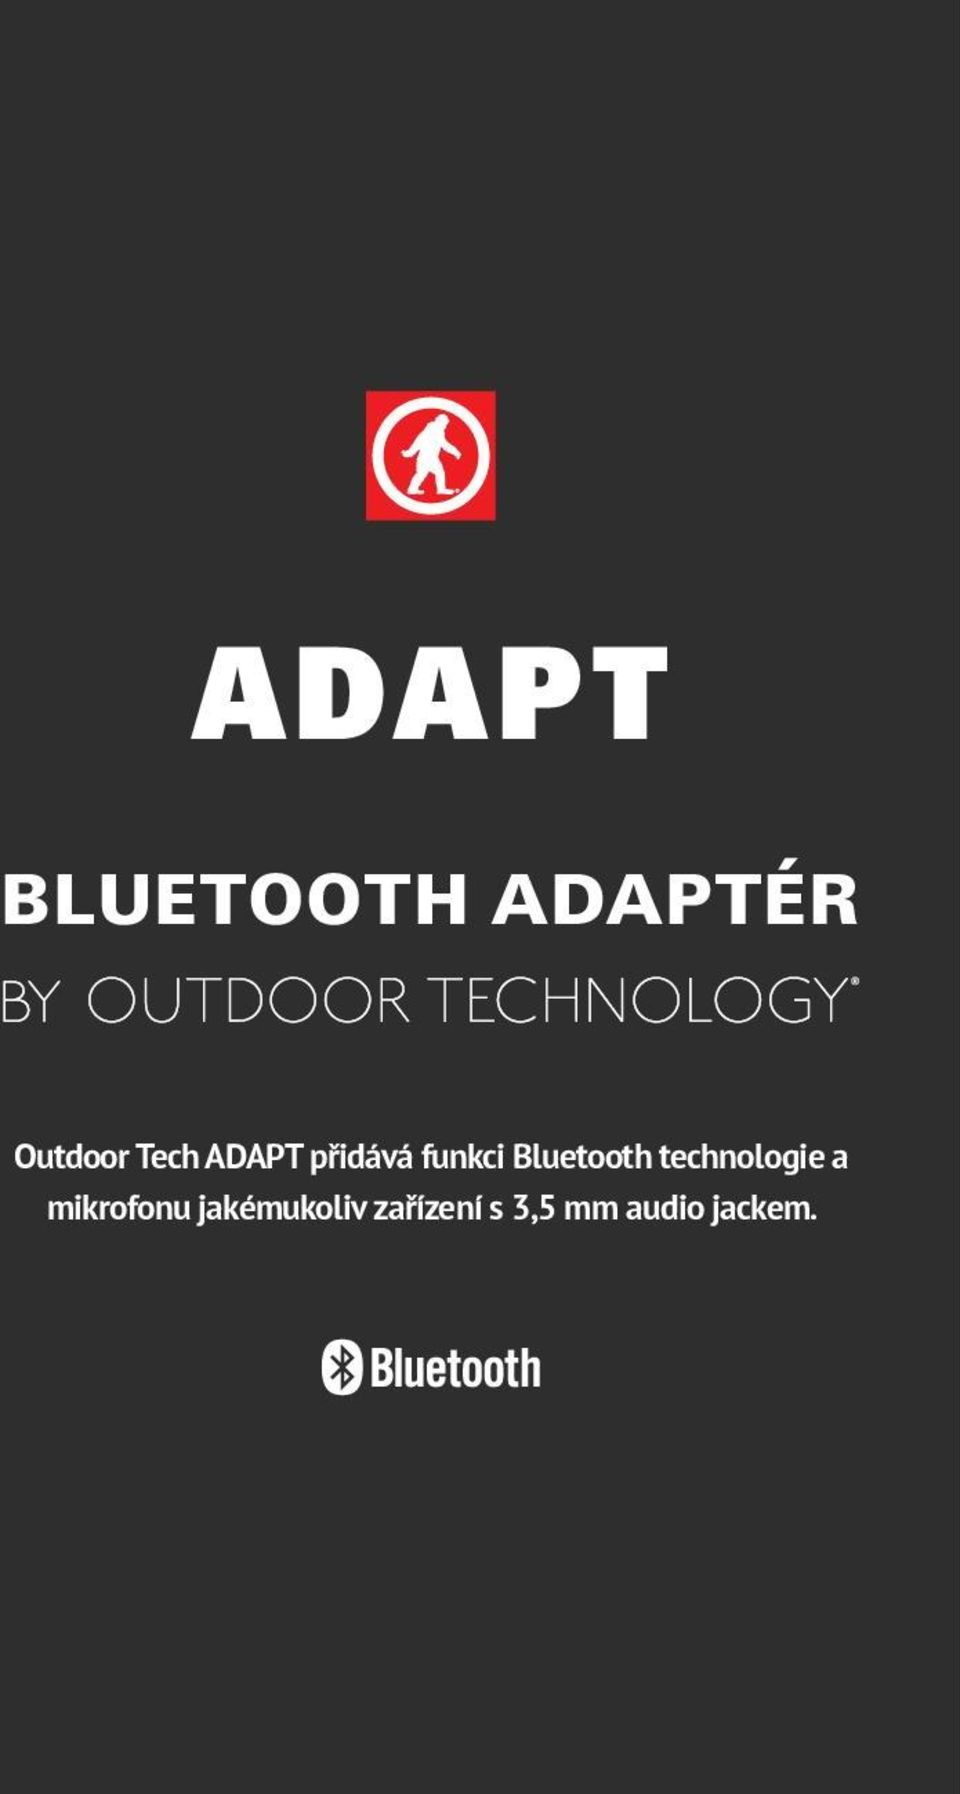 Bluetooth technologie a mikrofonu